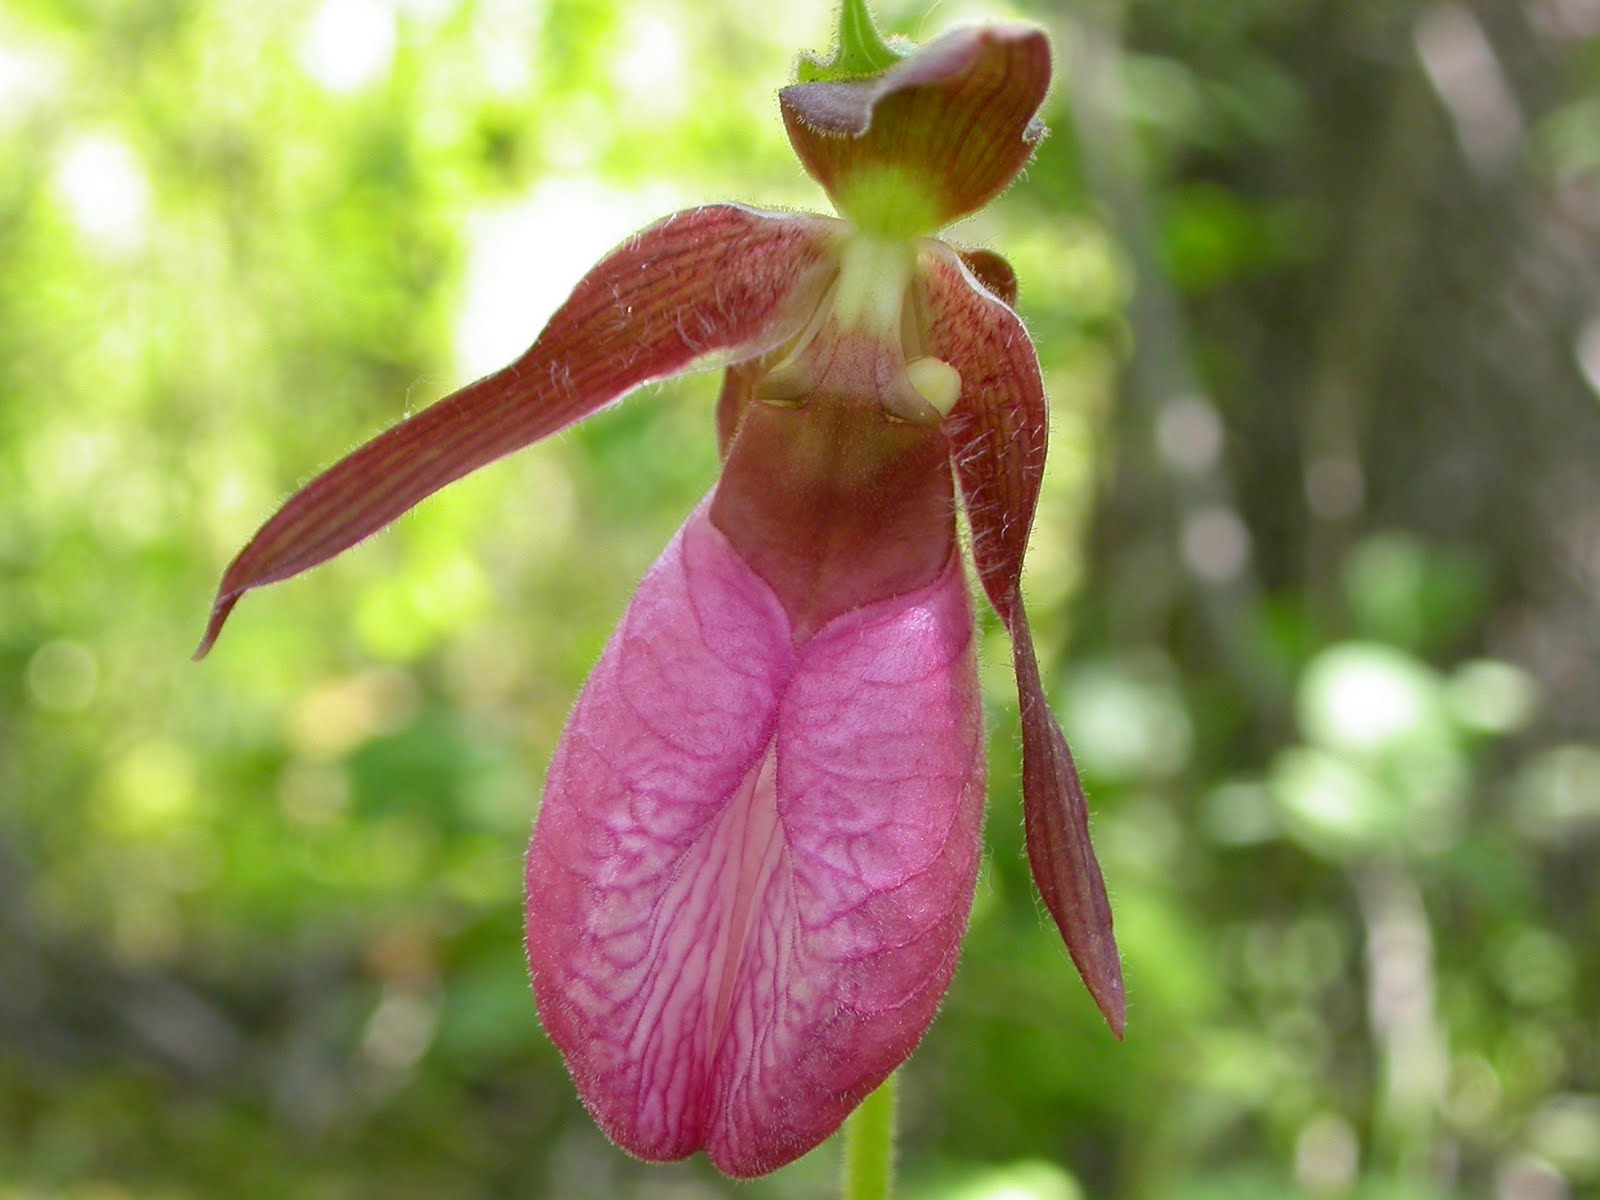 Get Your Botany Indiana s Lady s Slippers